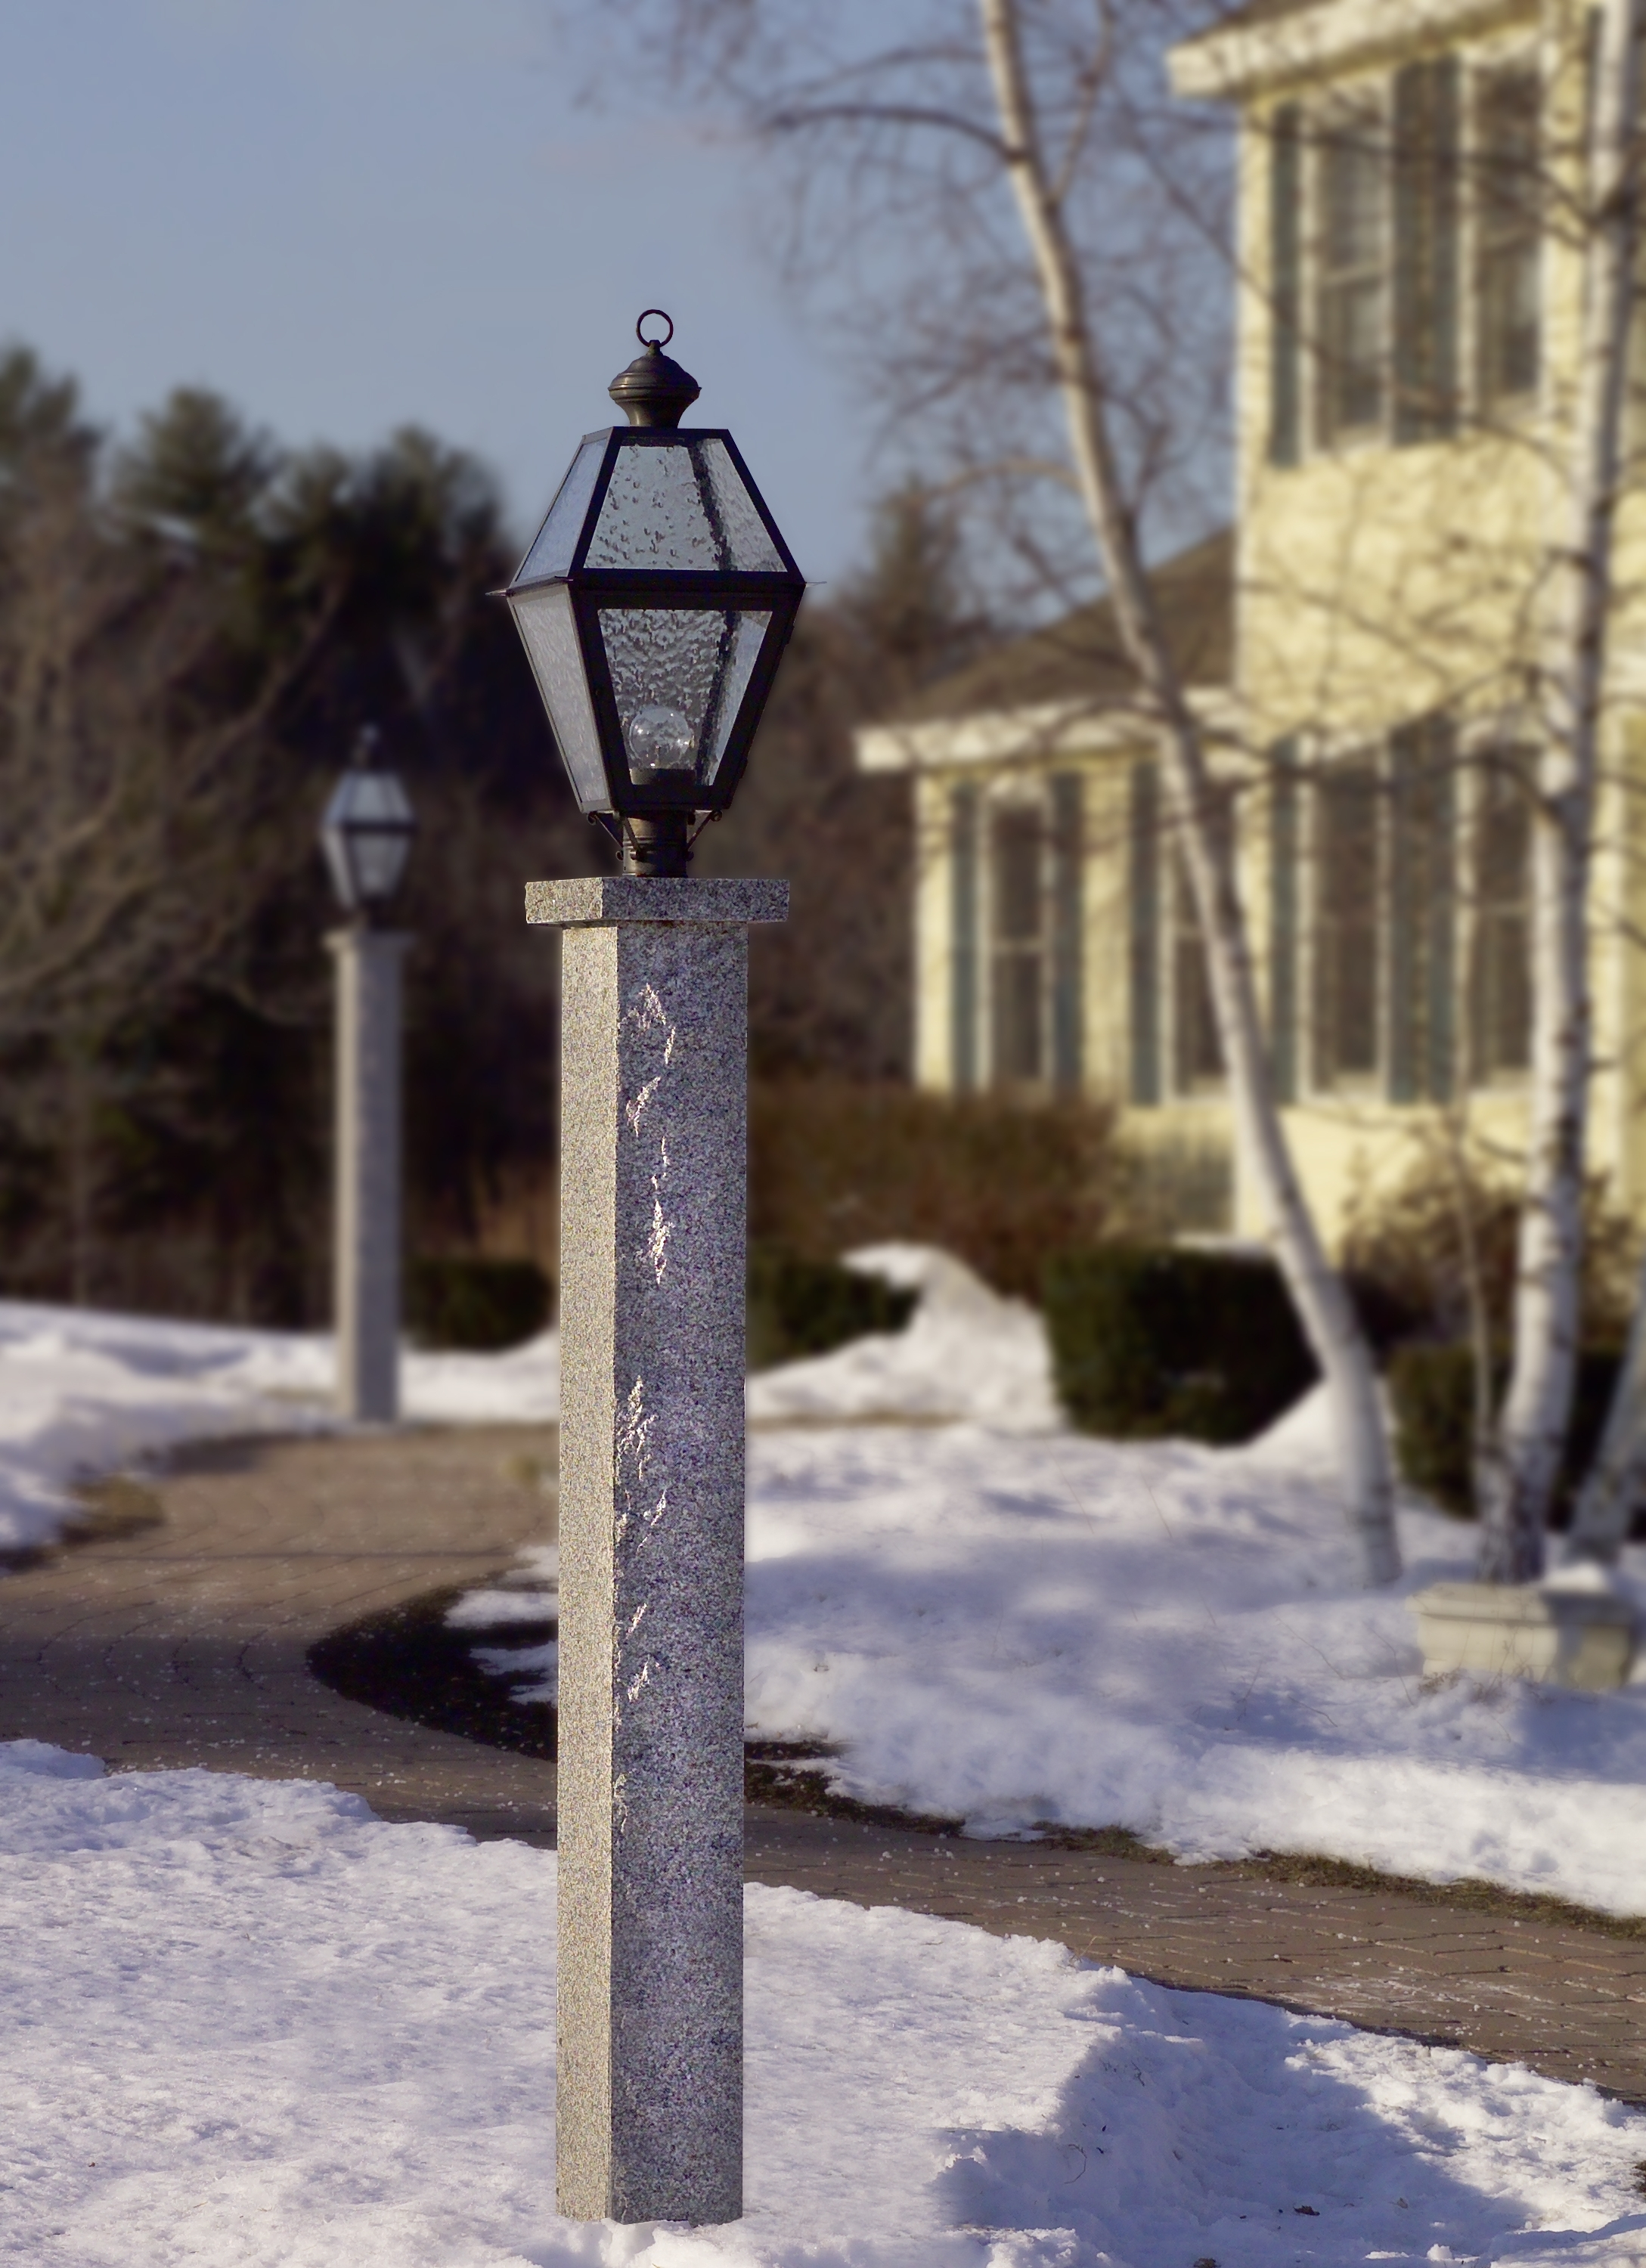 Outdoor Driveway Lanterns Throughout Most Popular Lamp : Lamp Post Prop Seven Productions Driveway Lanterns Light (View 14 of 20)